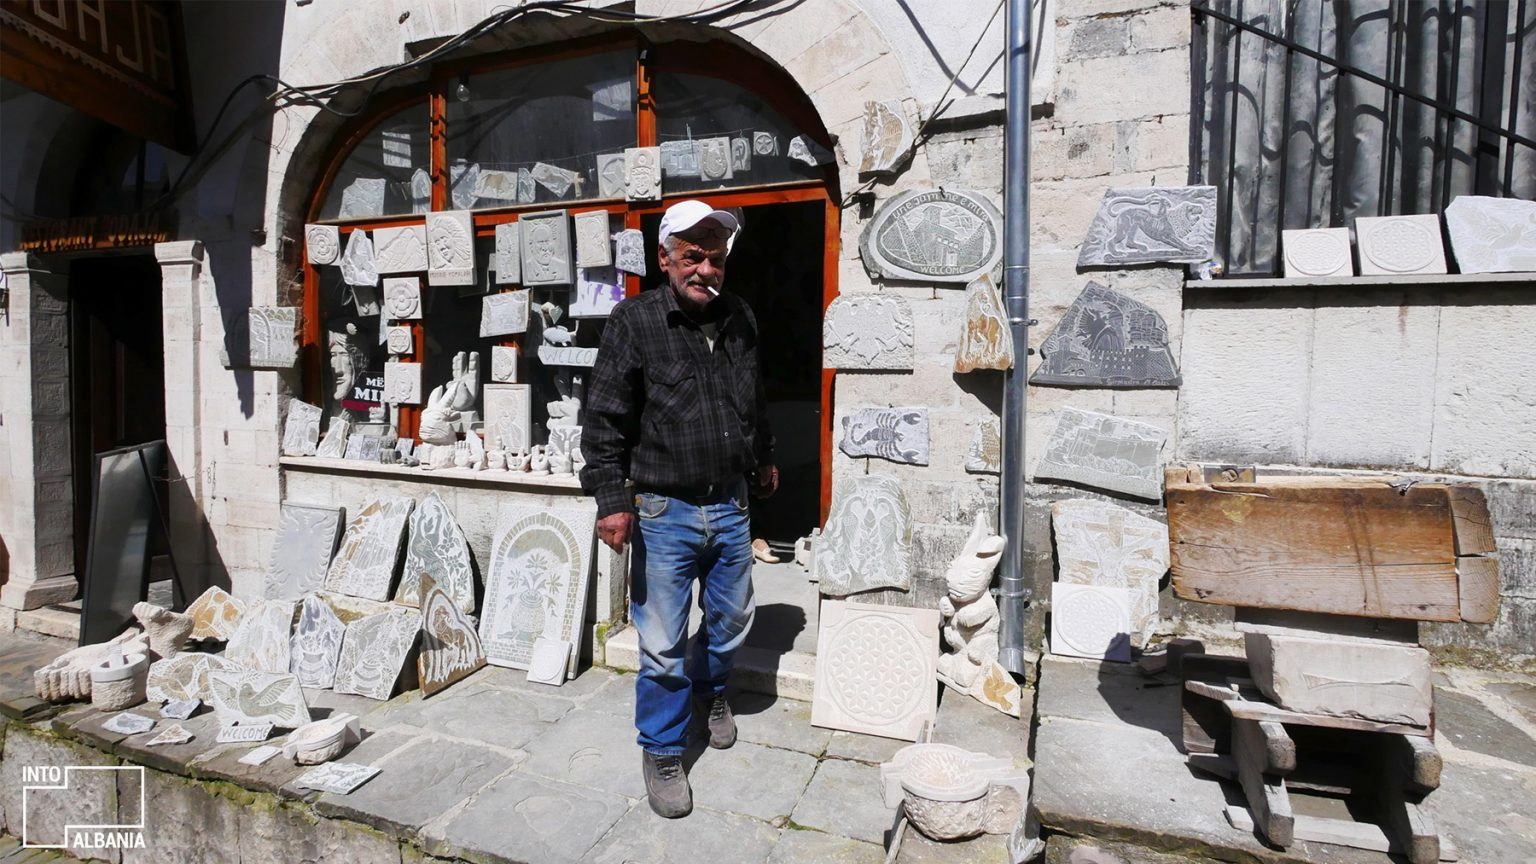 Muhedin Makri, Traditional stone carving, Old Bazaar in Gjirokastra, photo by IntoAlbania